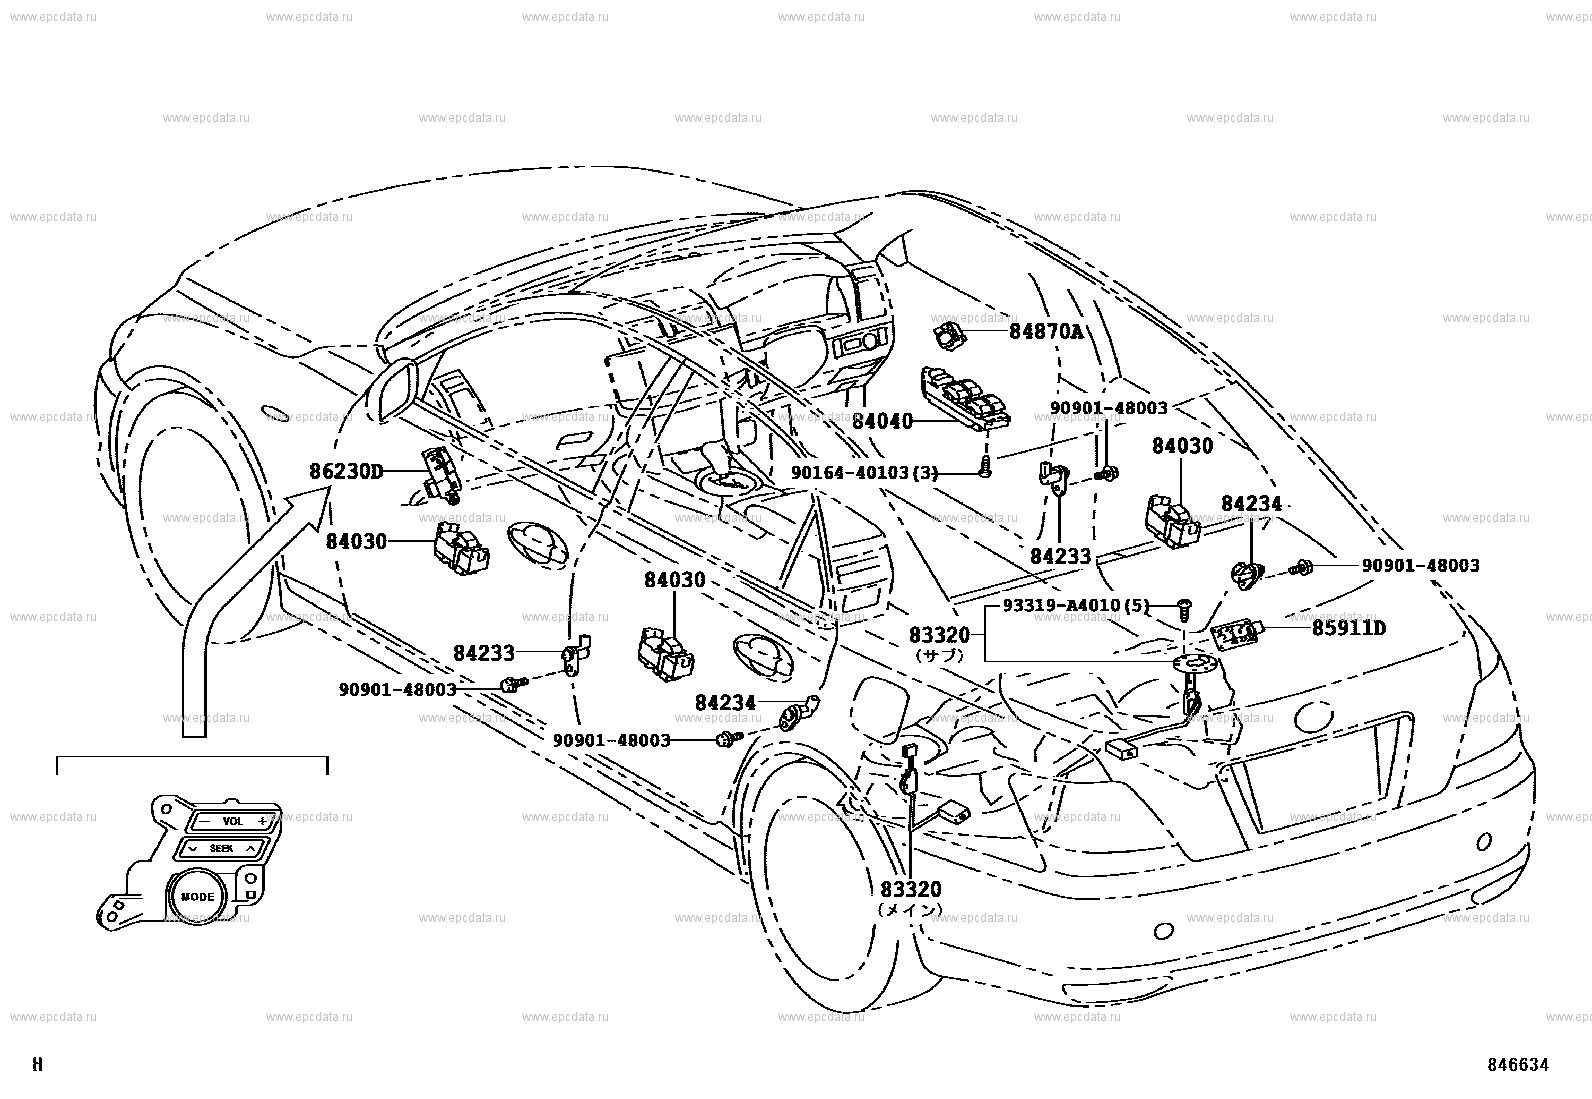 [DIAGRAM_38IS]  Switch & relay & computer for Toyota Mark X GRX120 - Auto parts | Toyota Mark X Fuse Box |  | Toyota parts catalog